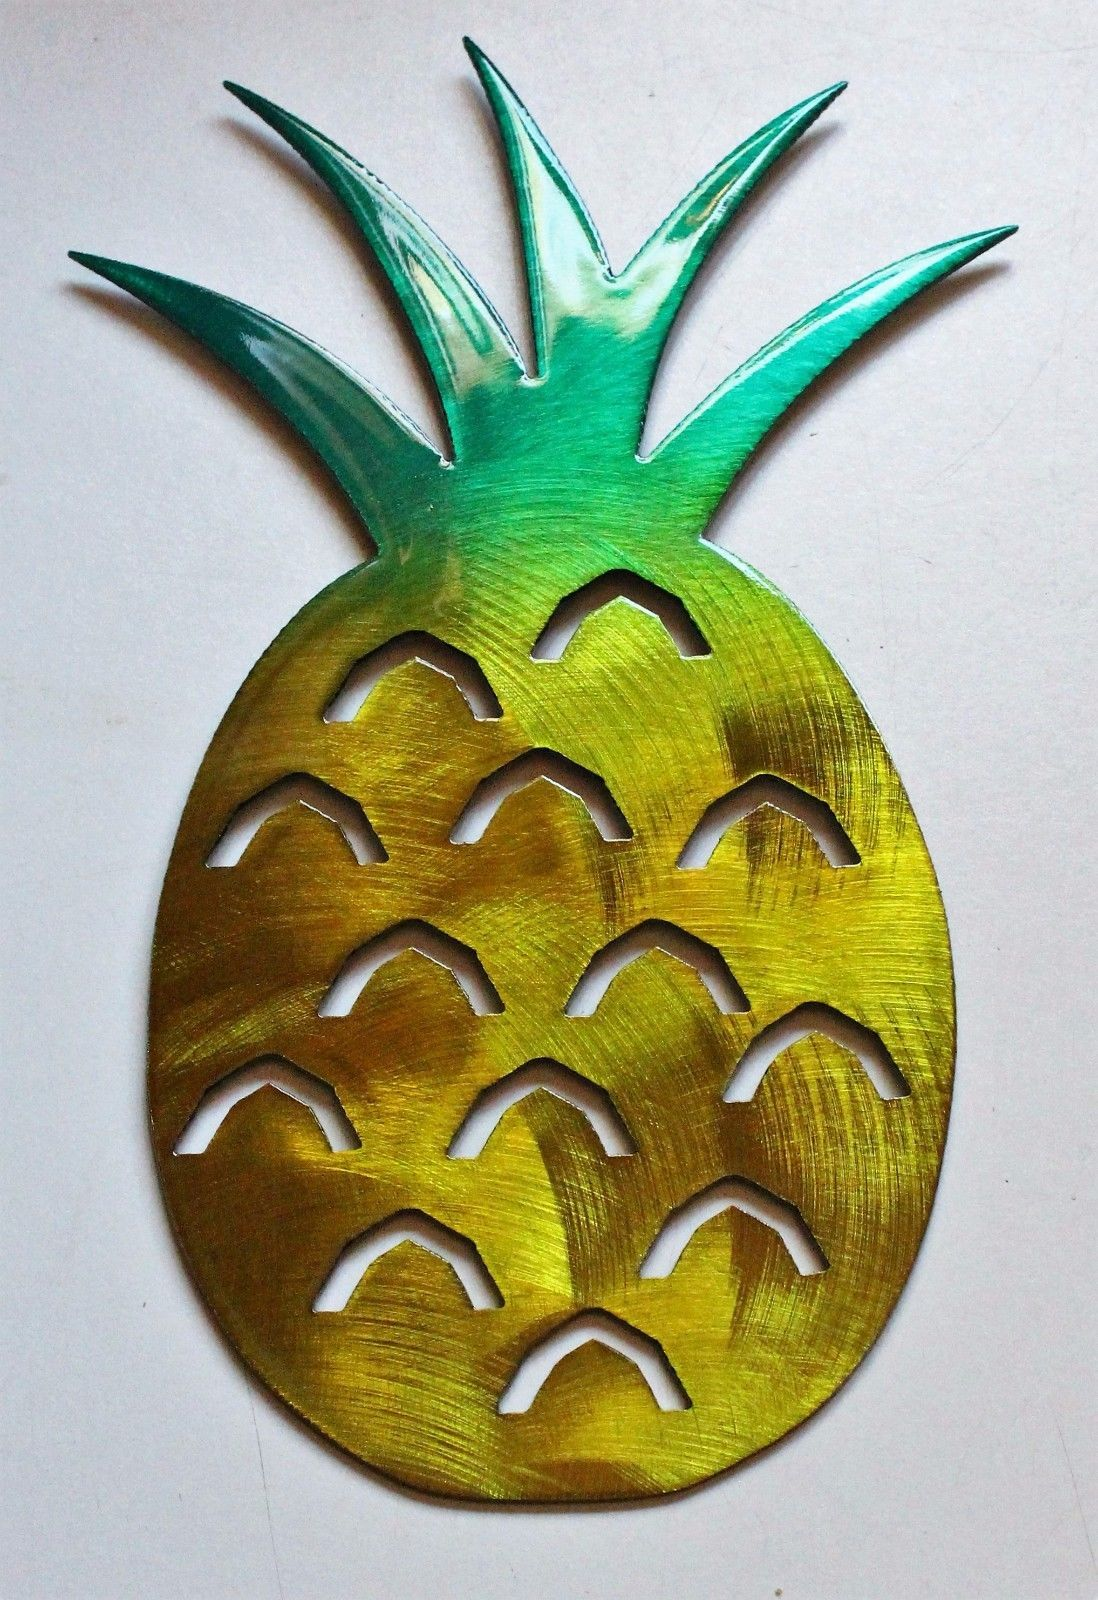 Pineapple Metal Wall Art - Elitflat